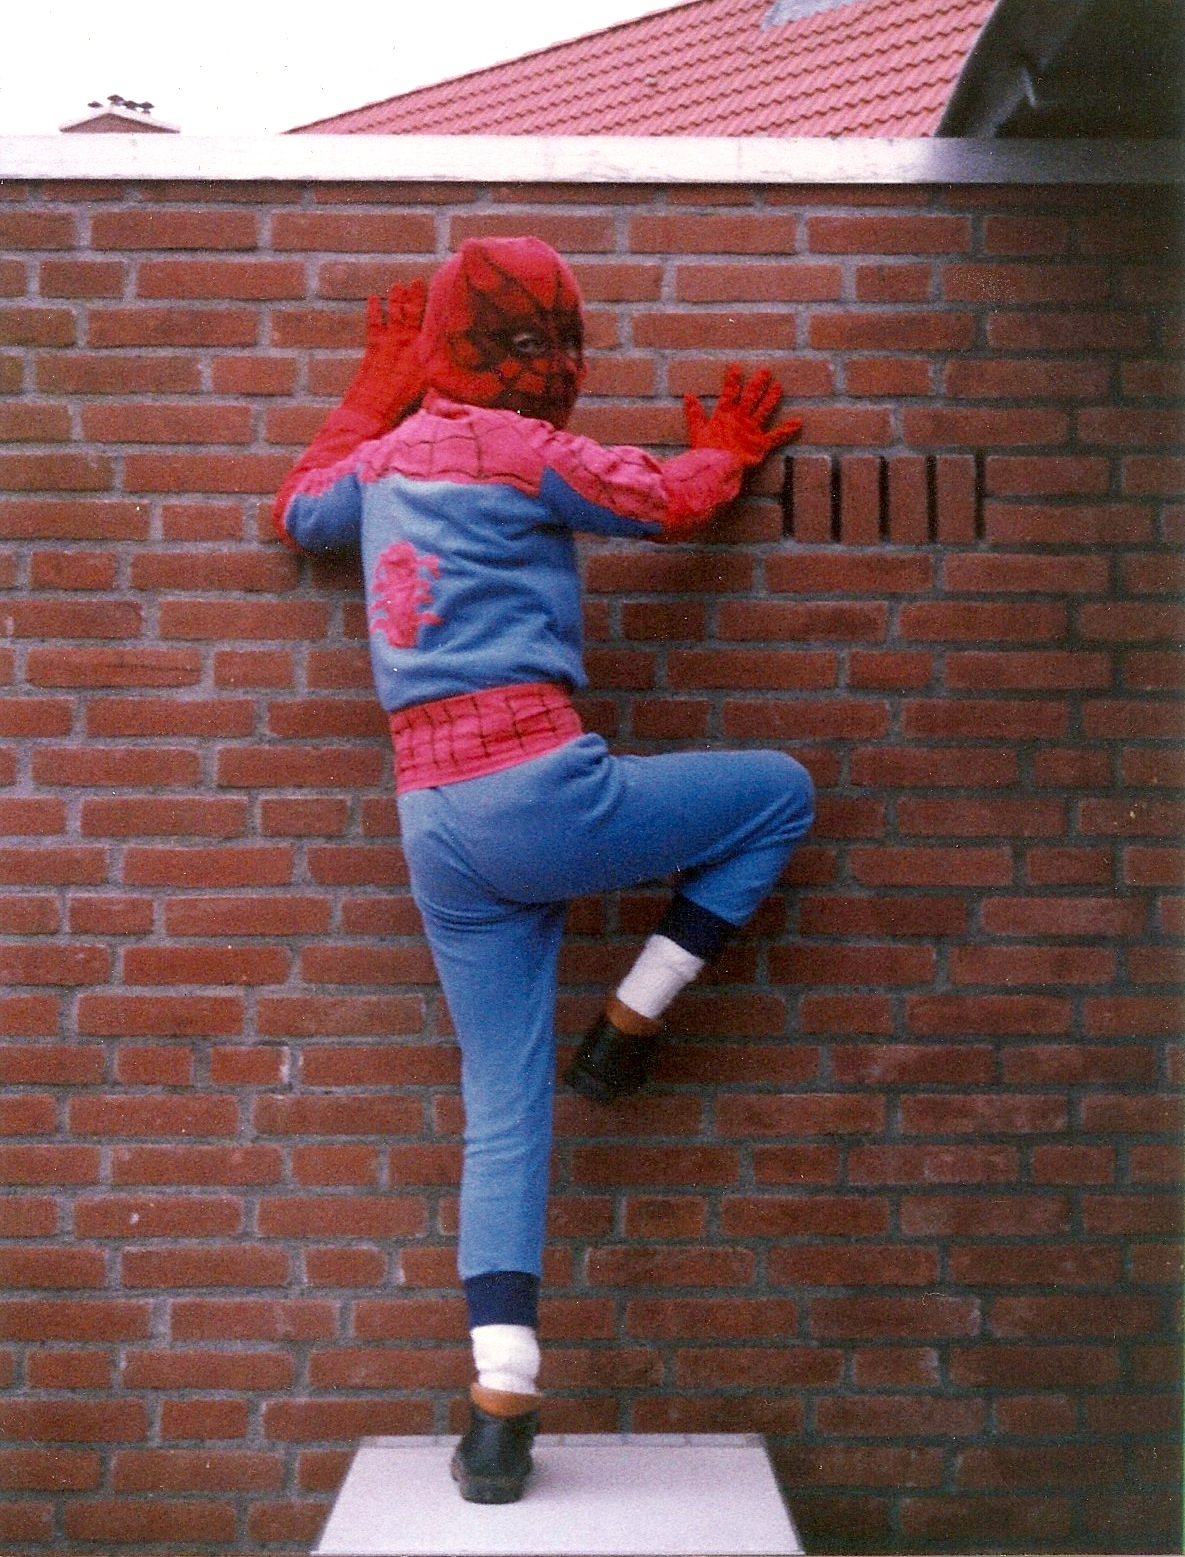 Author Michael Minneboo dressed up as Spider-Man